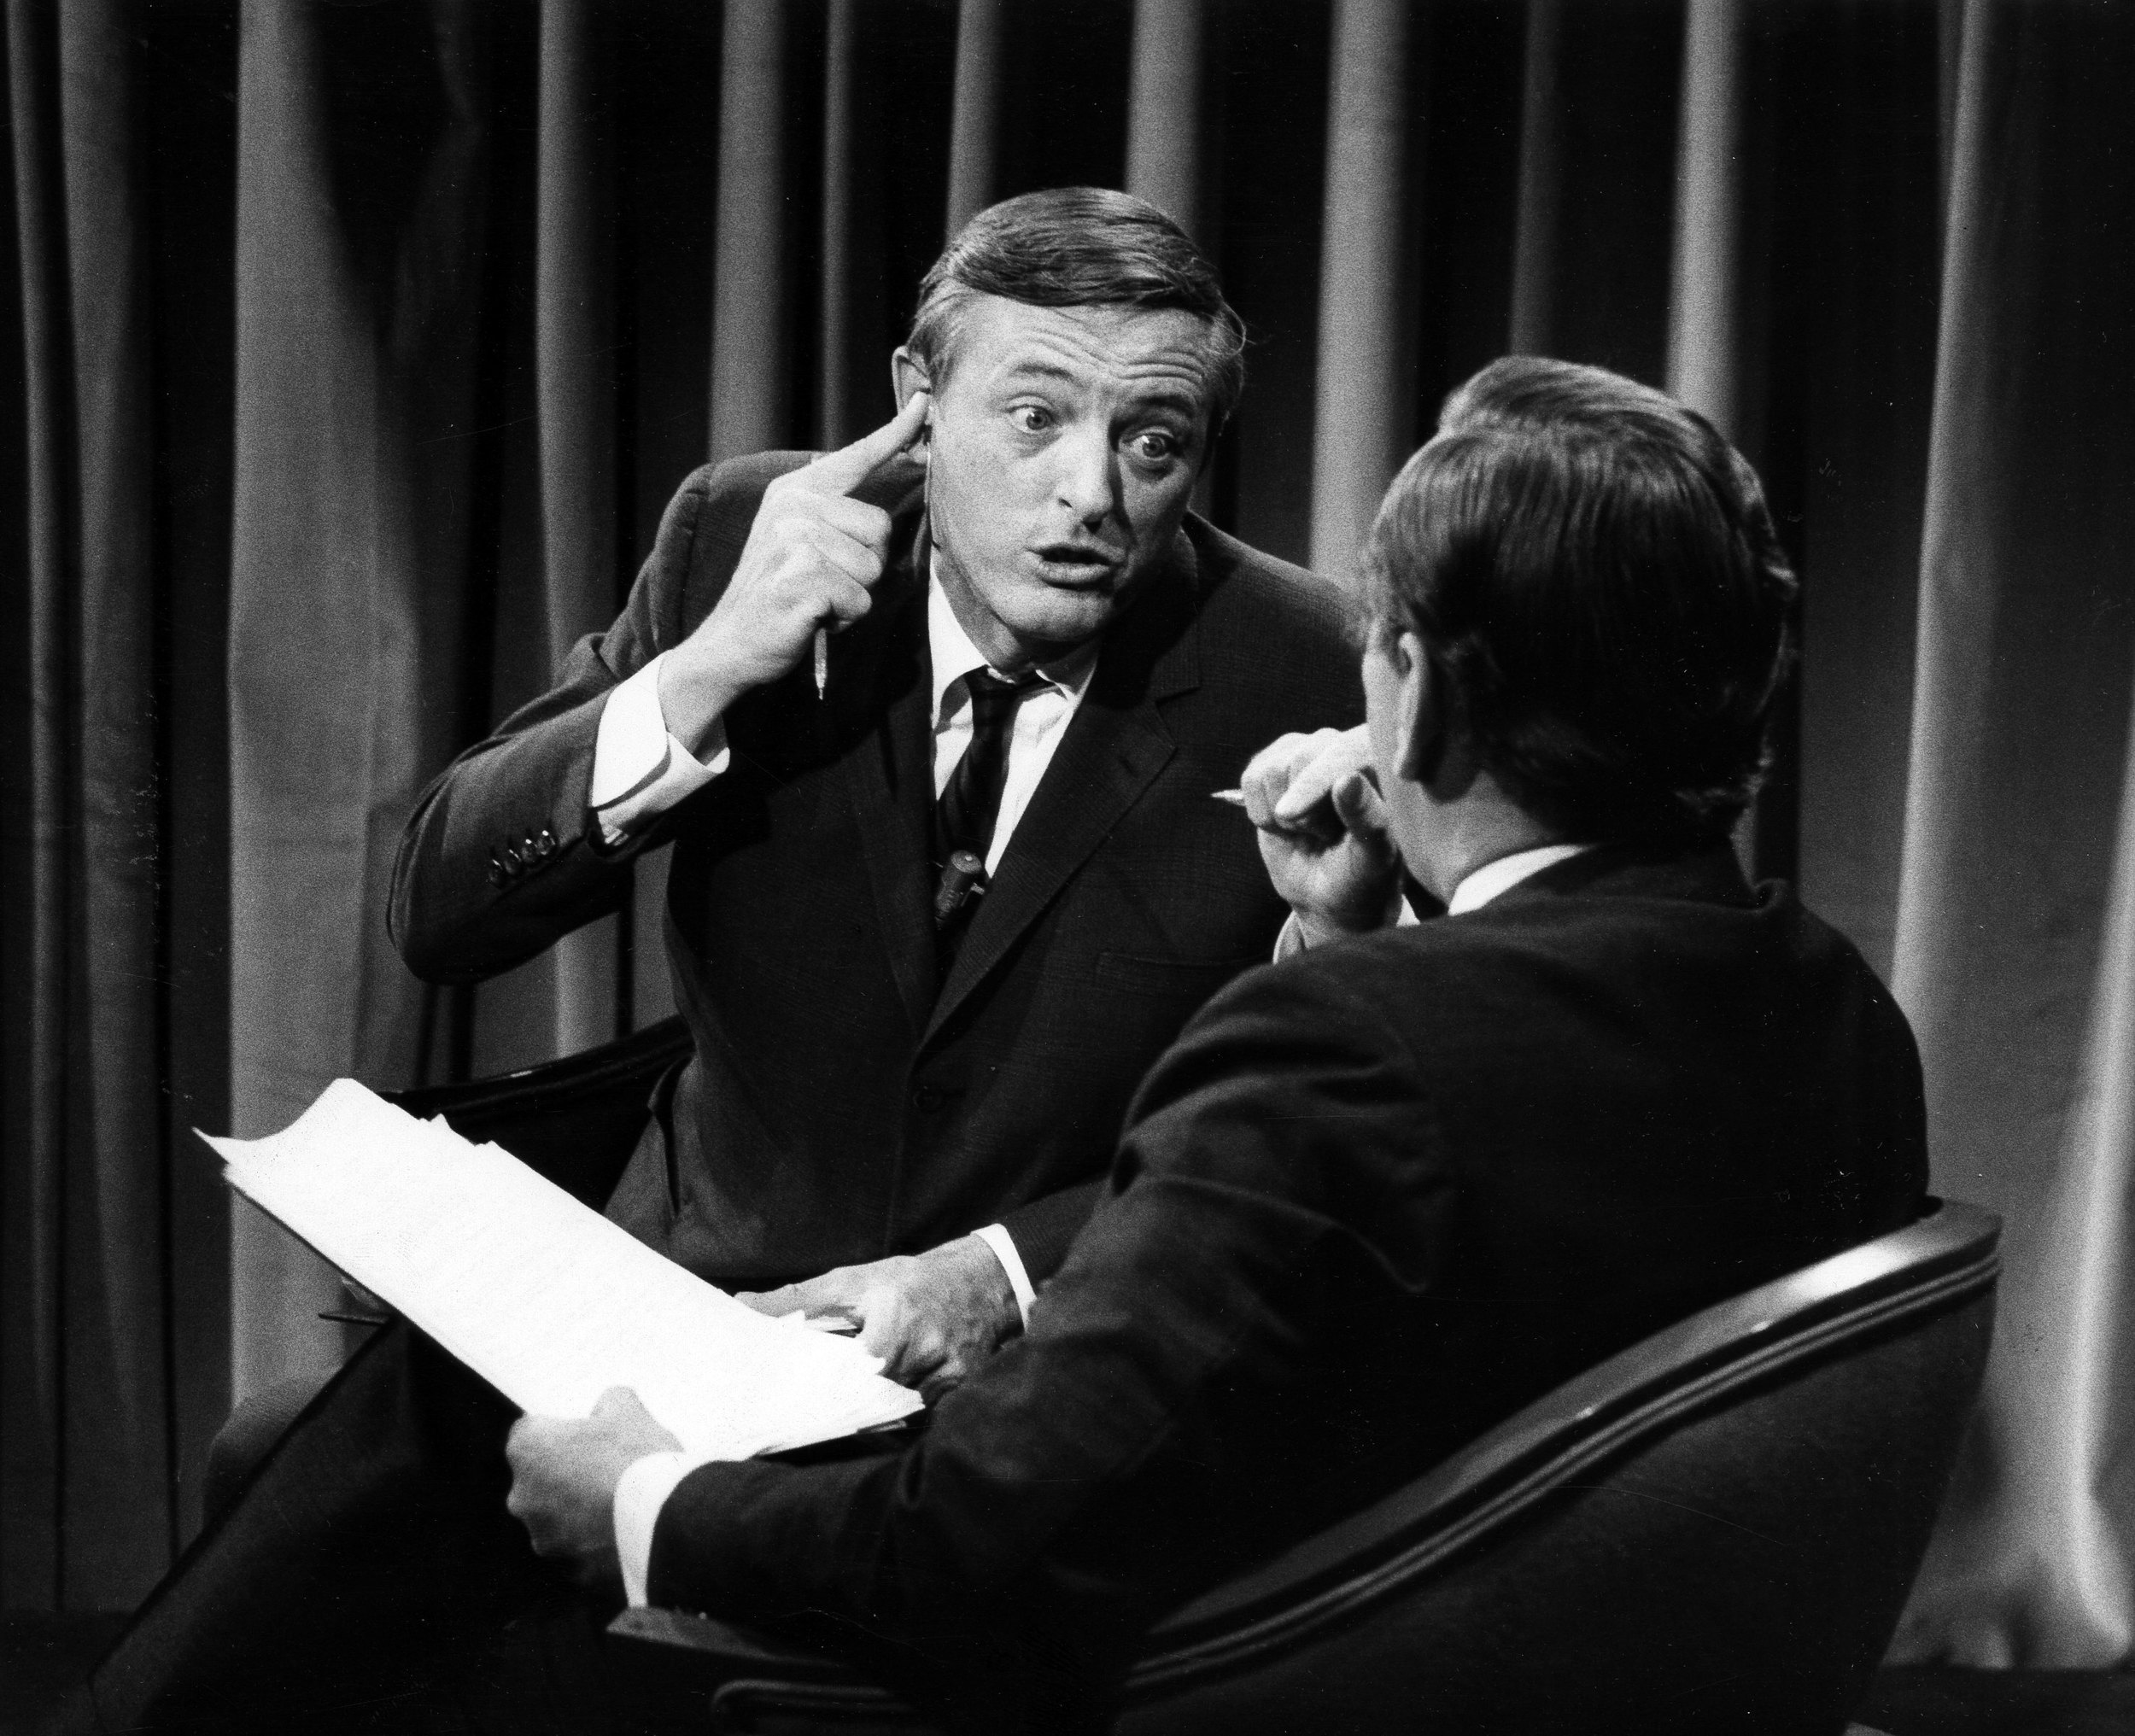 Best of Enemies Directed by Morgan Neville & Robert Gordon  88 minutes | Documentary